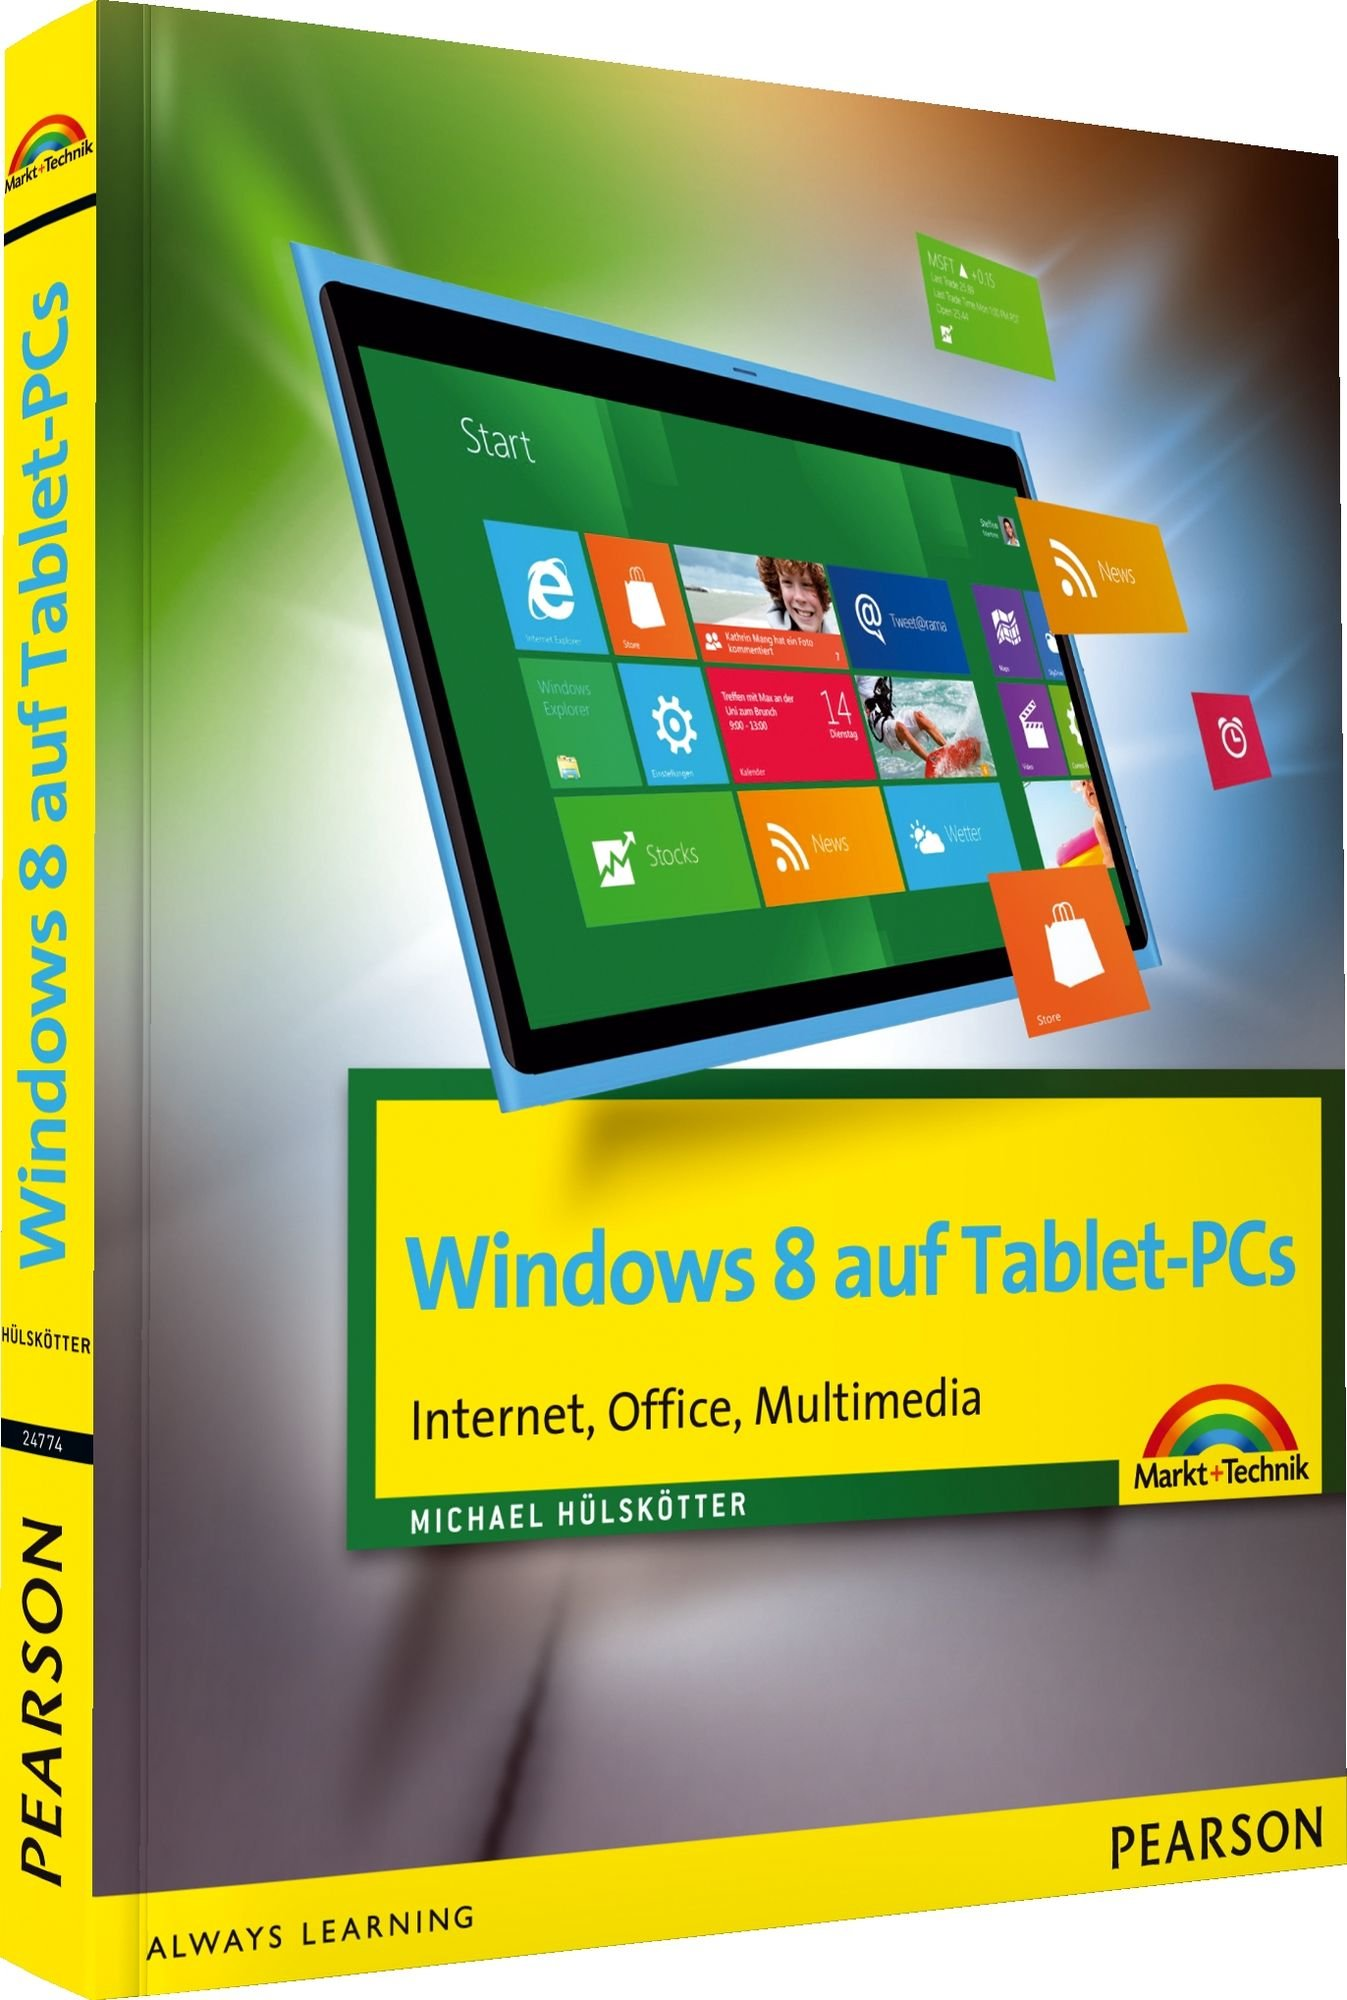 Windows 8 auf Tablet-PCs - Internet, Office, Multimedia (Sonstige Bücher M+T)